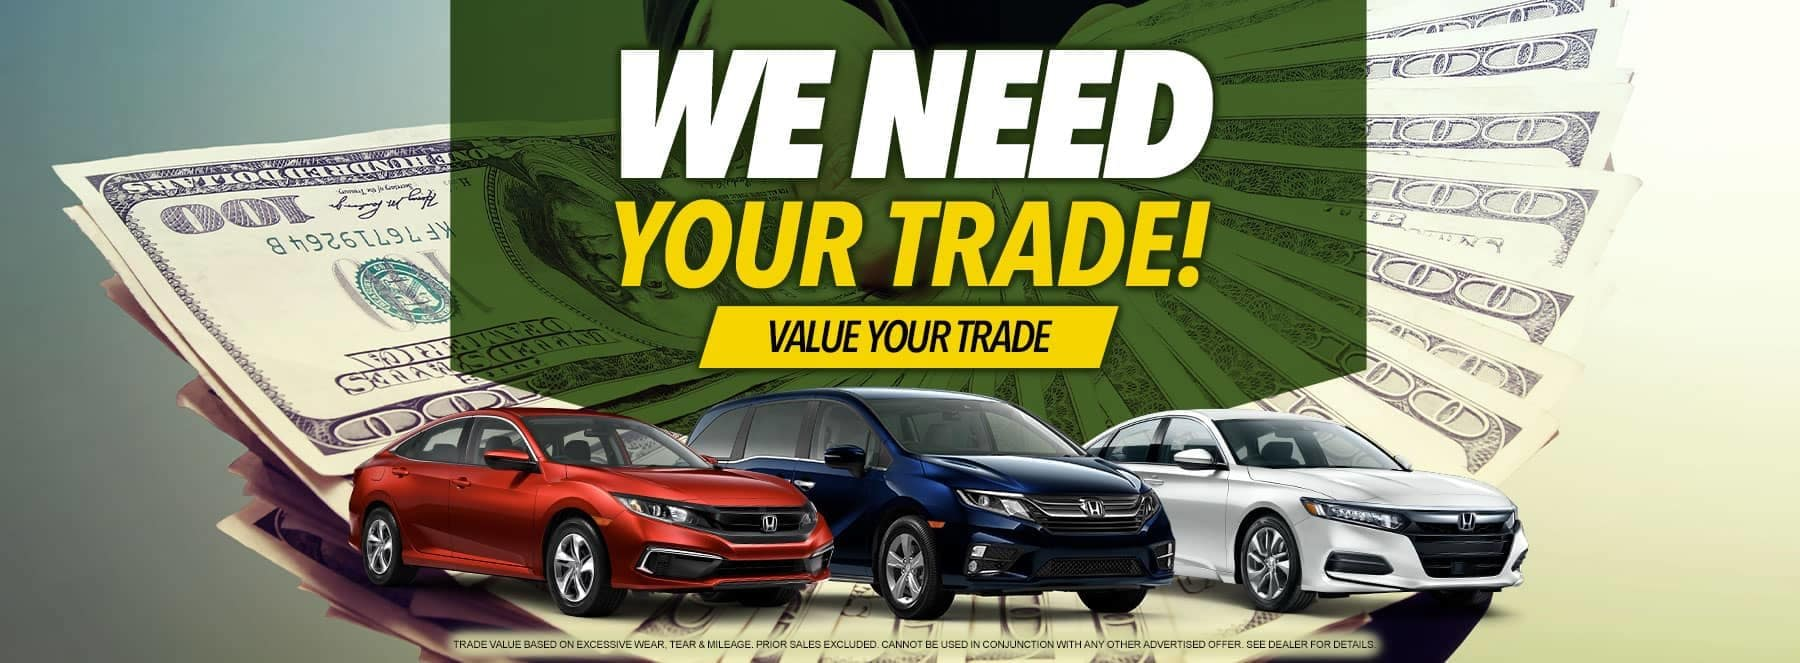 We Need Your Trade